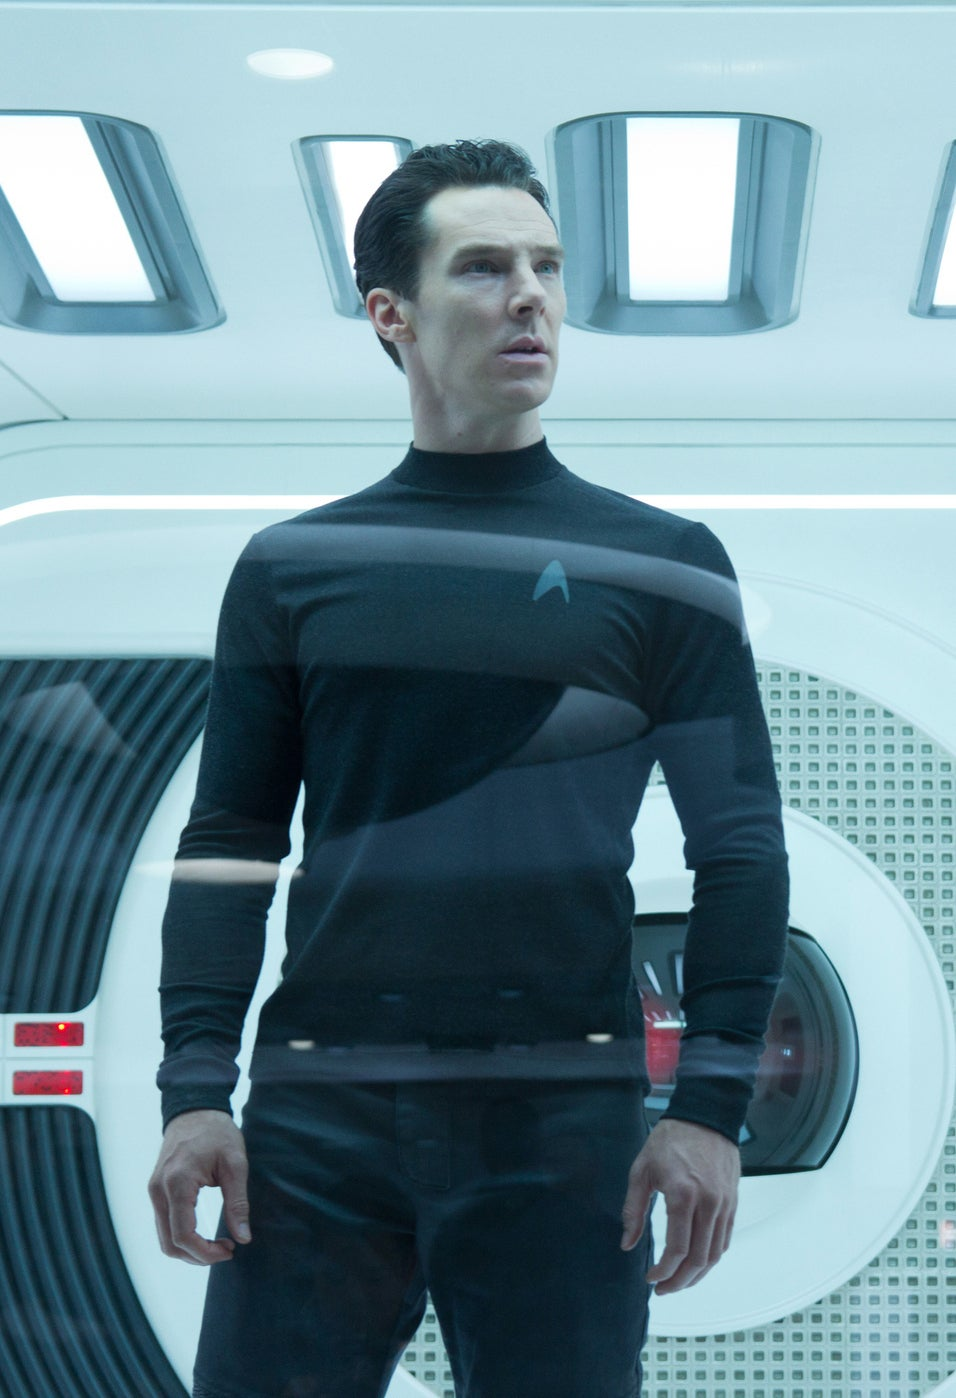 As Khan in Star Trek: Into Darkness